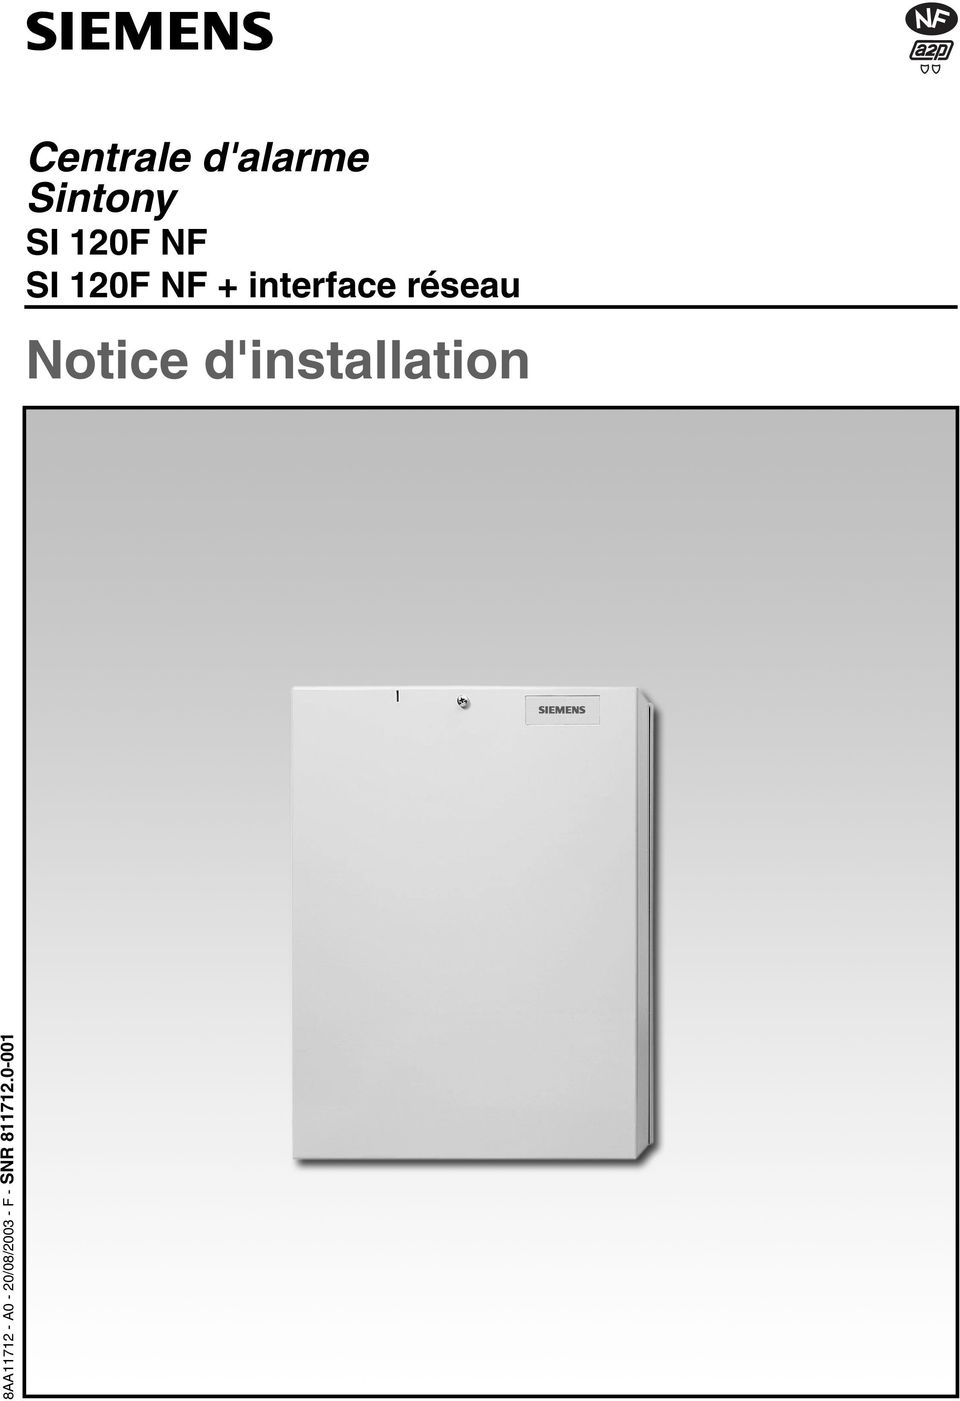 interface réseau Notice